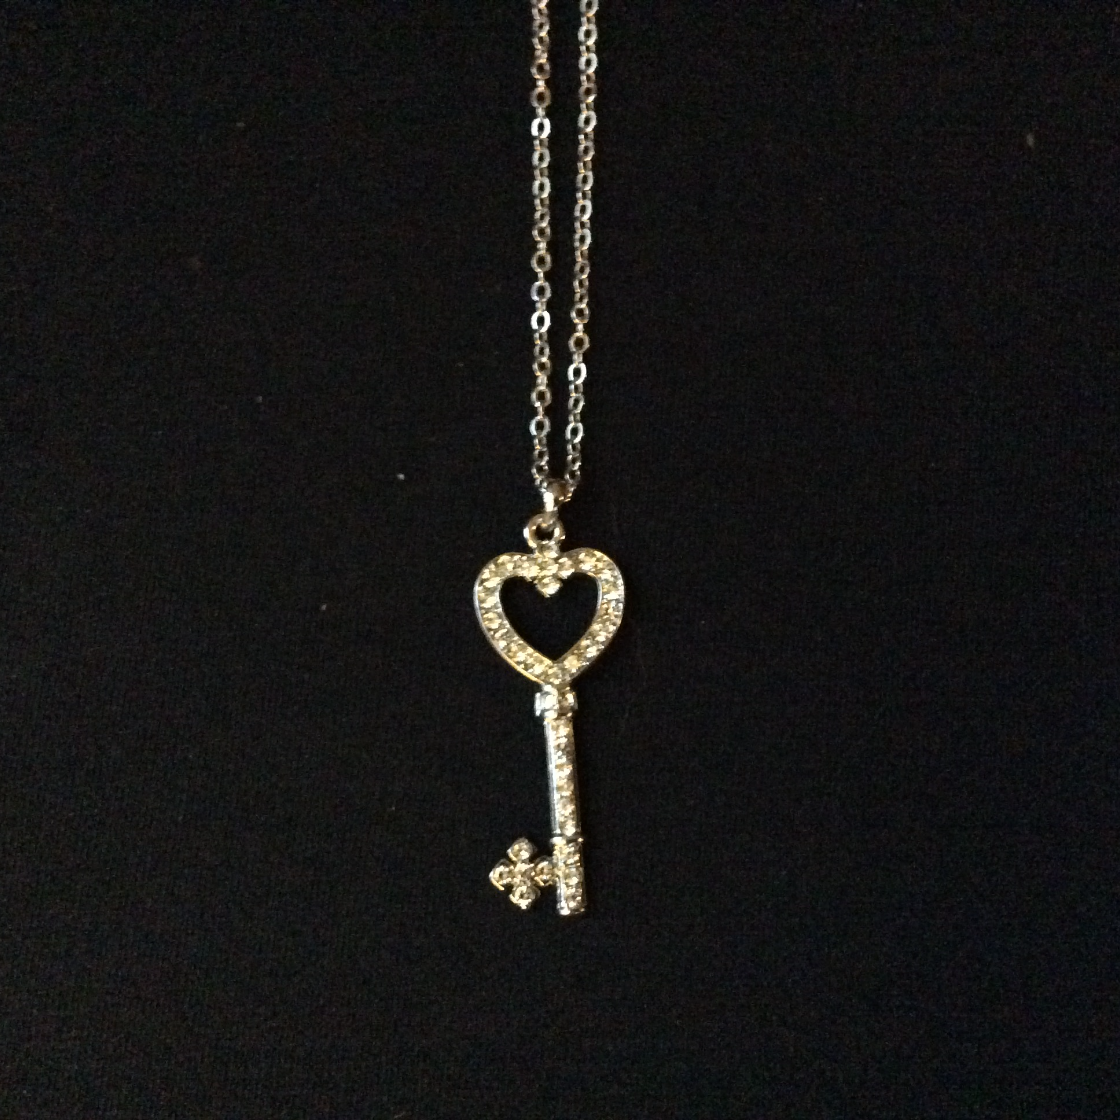 Heart Key Charm Necklace